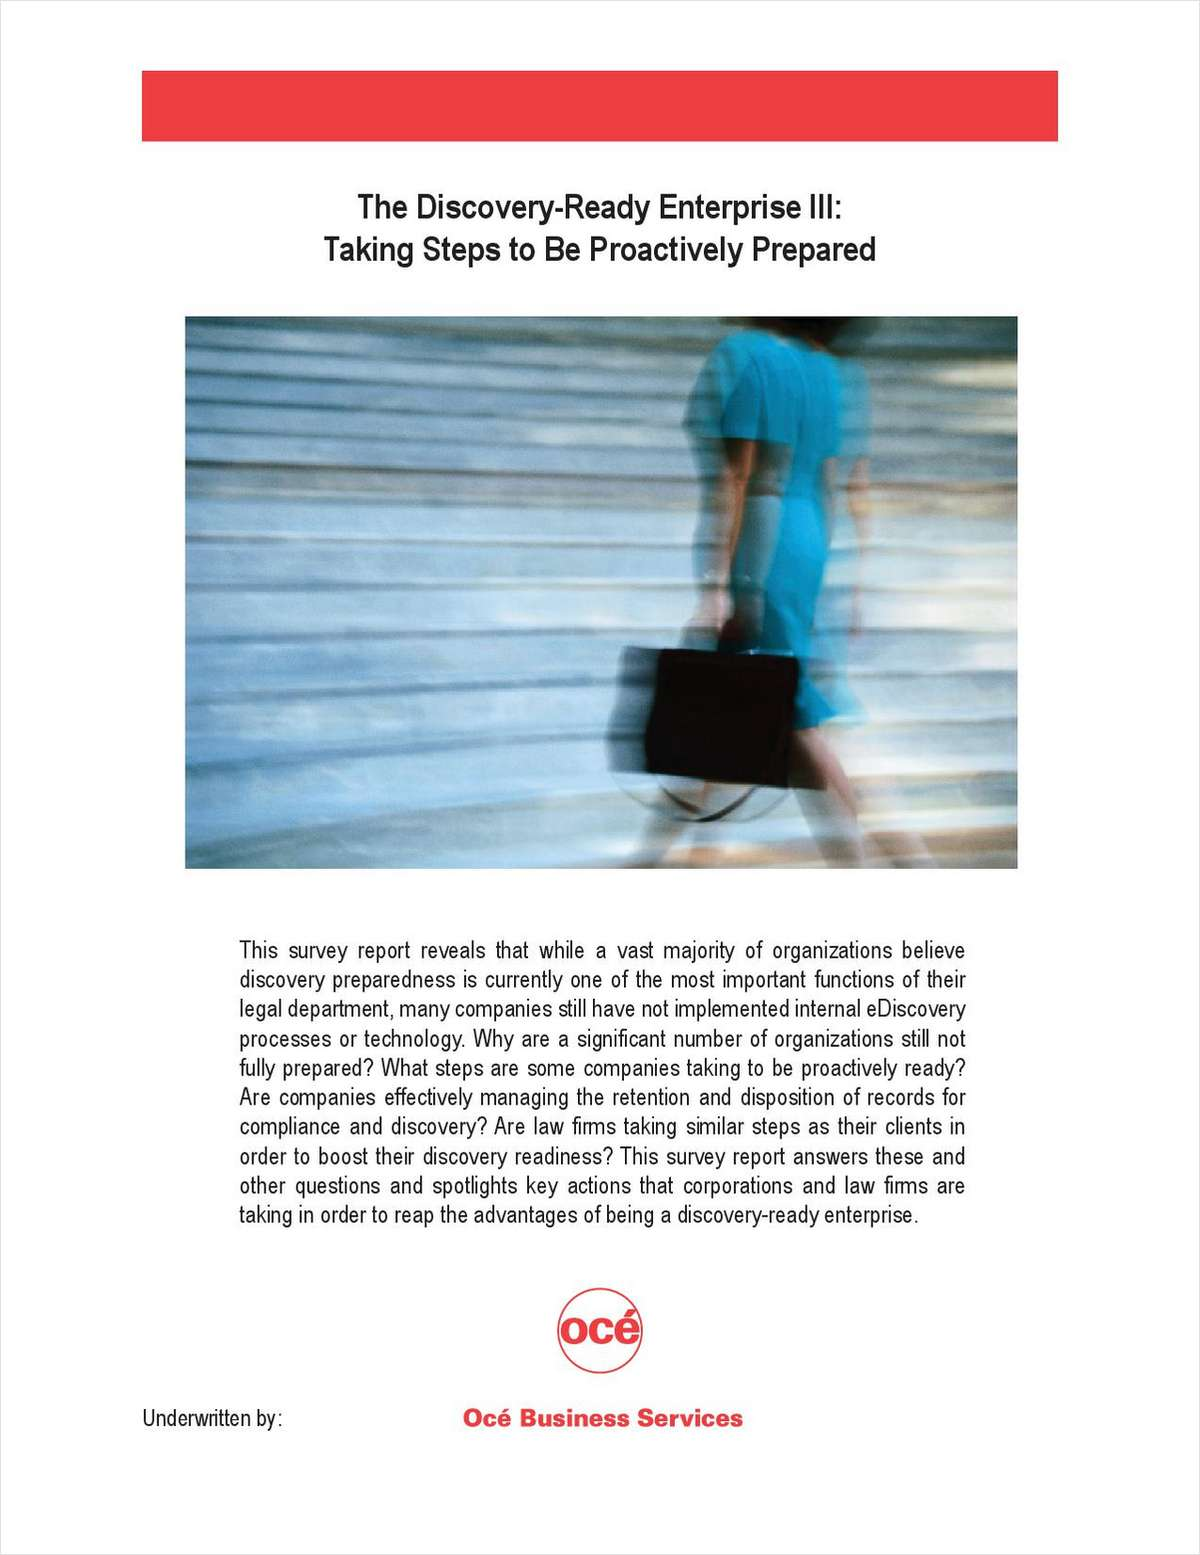 The Discovery-Ready Enterprise III: Taking Steps to Be Proactively Prepared